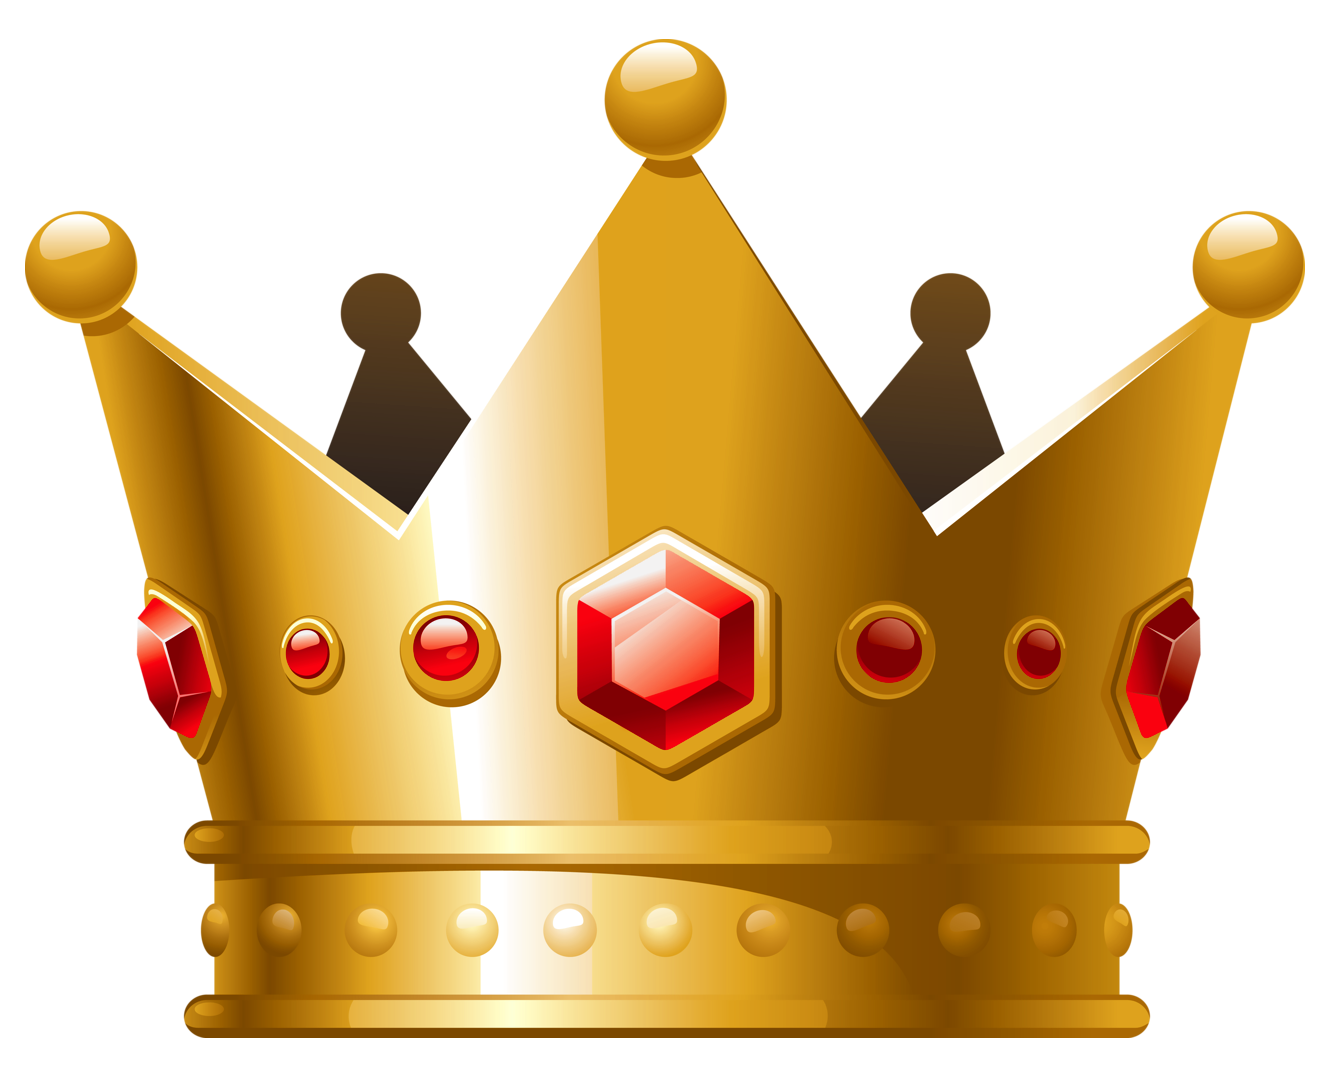 Crown transparent crown image with transparent background 2.